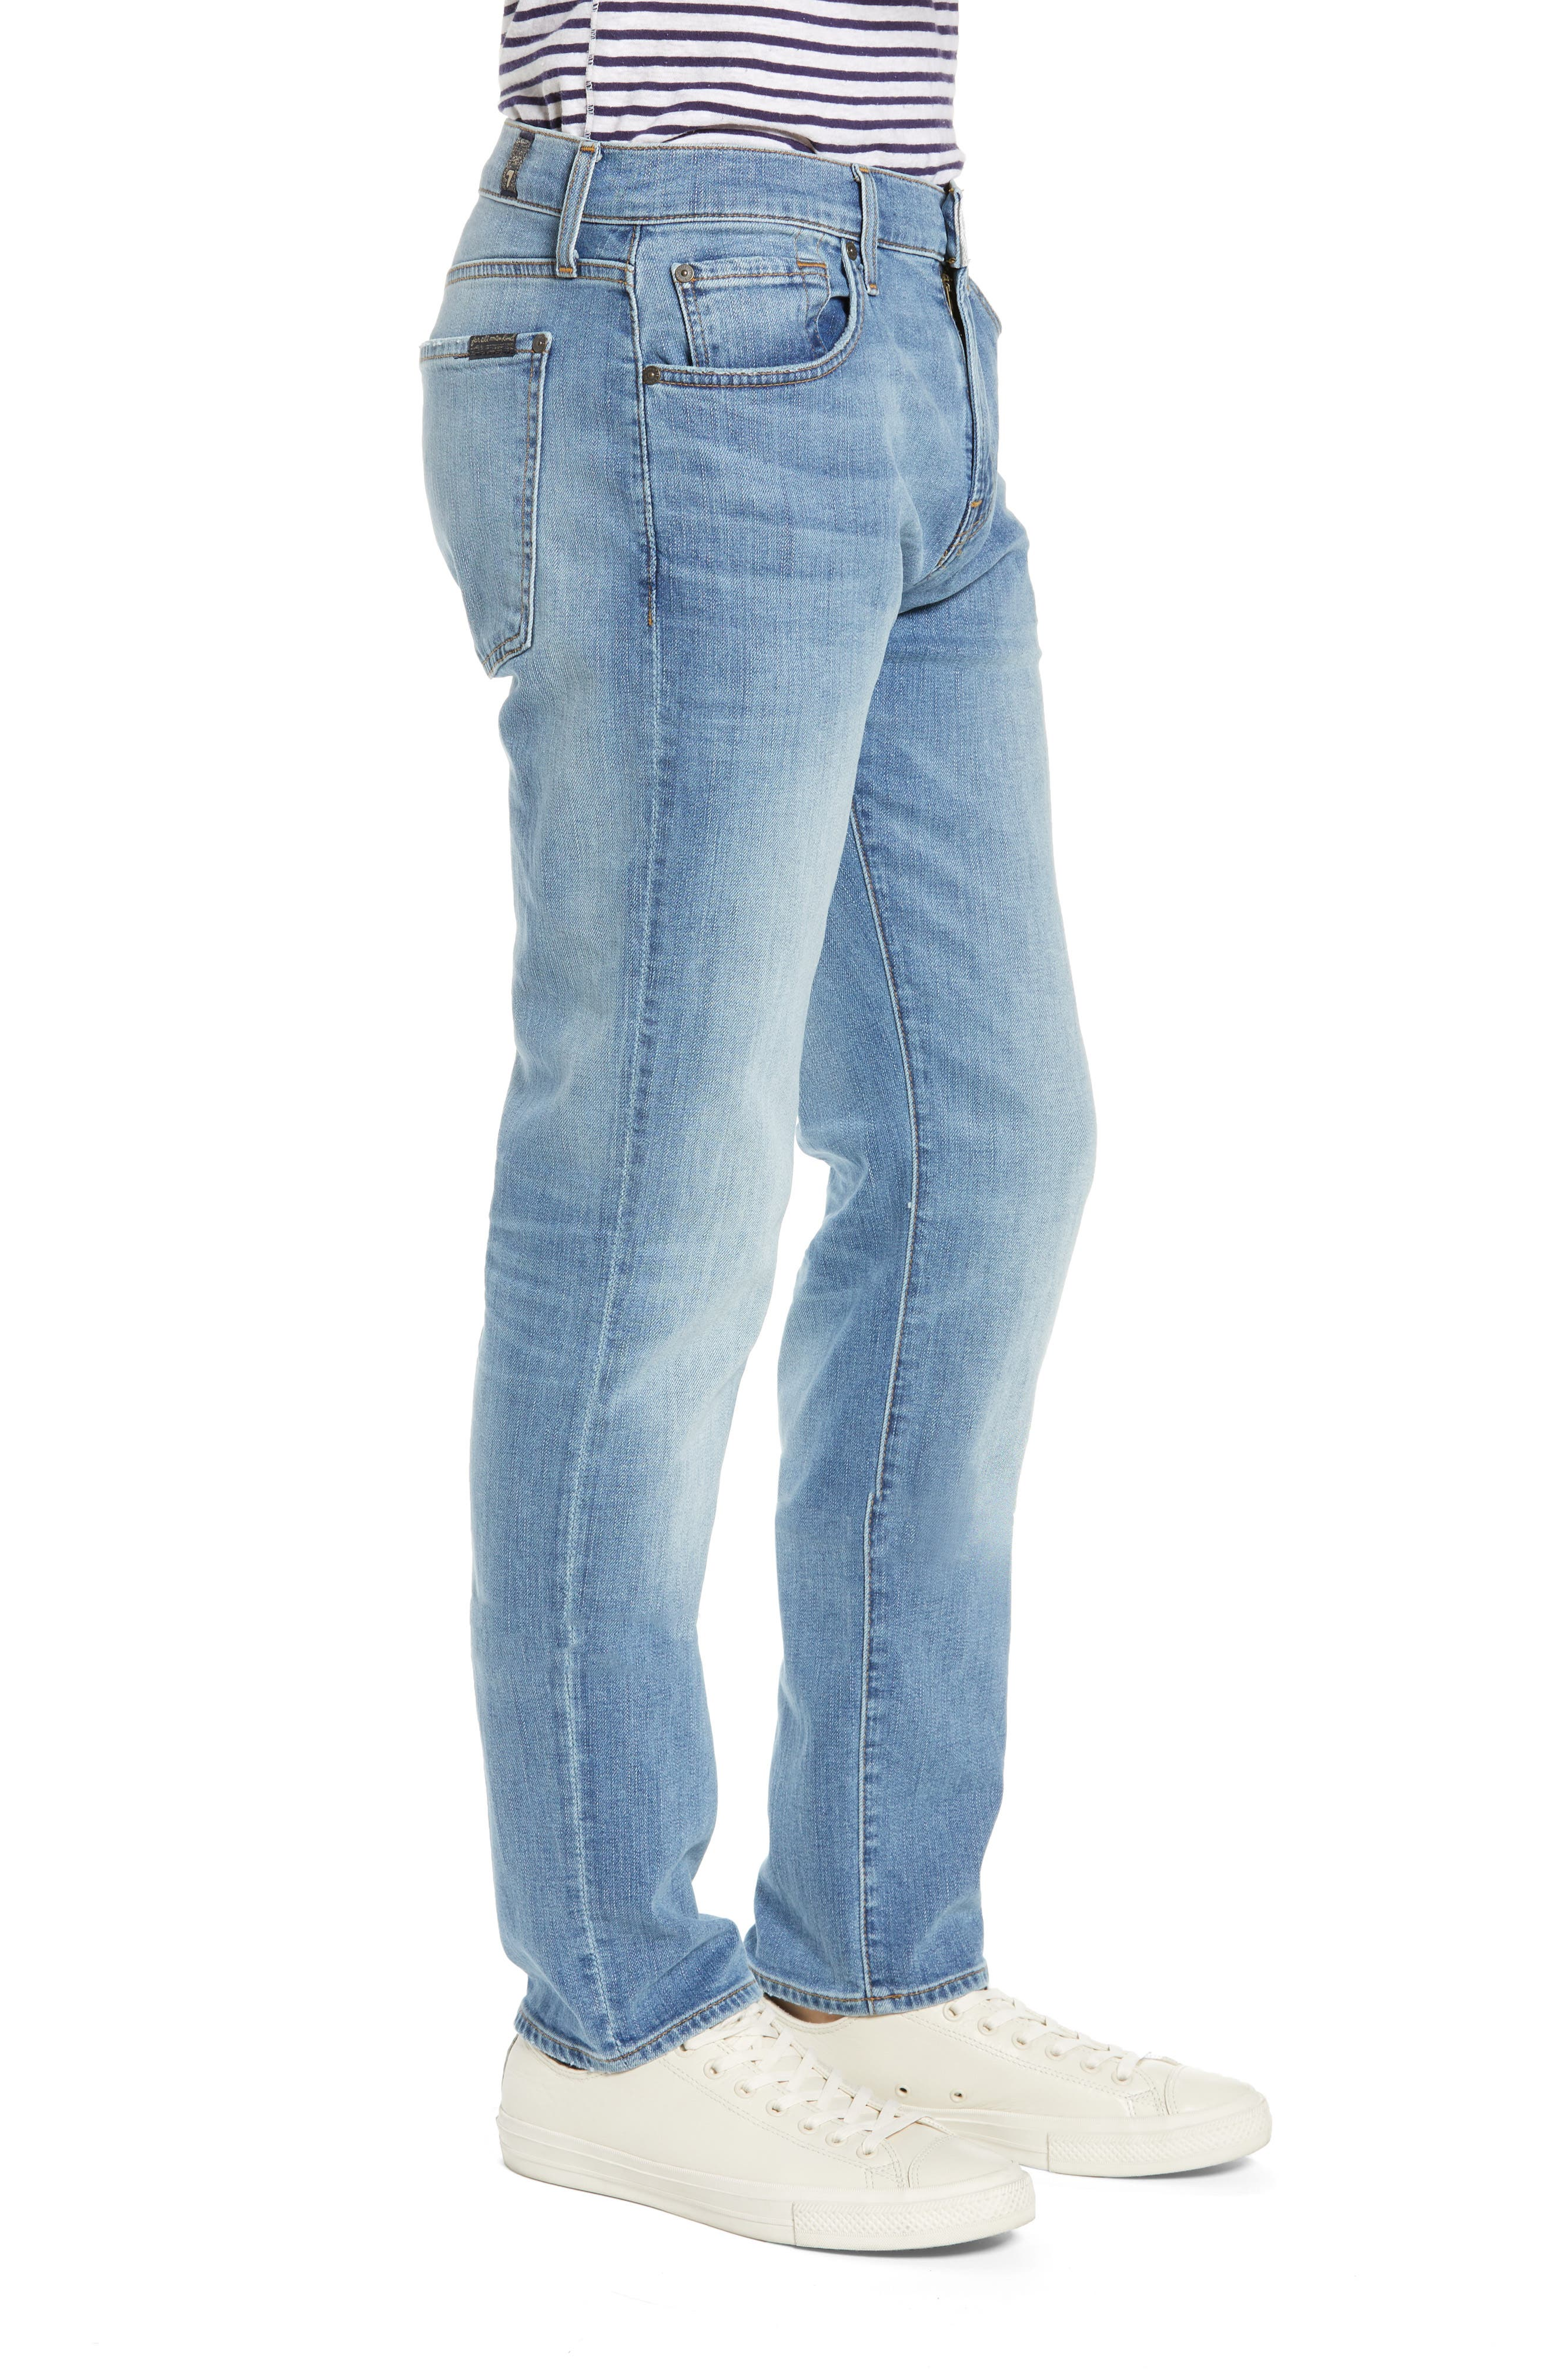 7 FOR ALL MANKIND<SUP>®</SUP>, Adrien Luxe Performance Slim Fit Jeans, Alternate thumbnail 4, color, ZEITGEIST